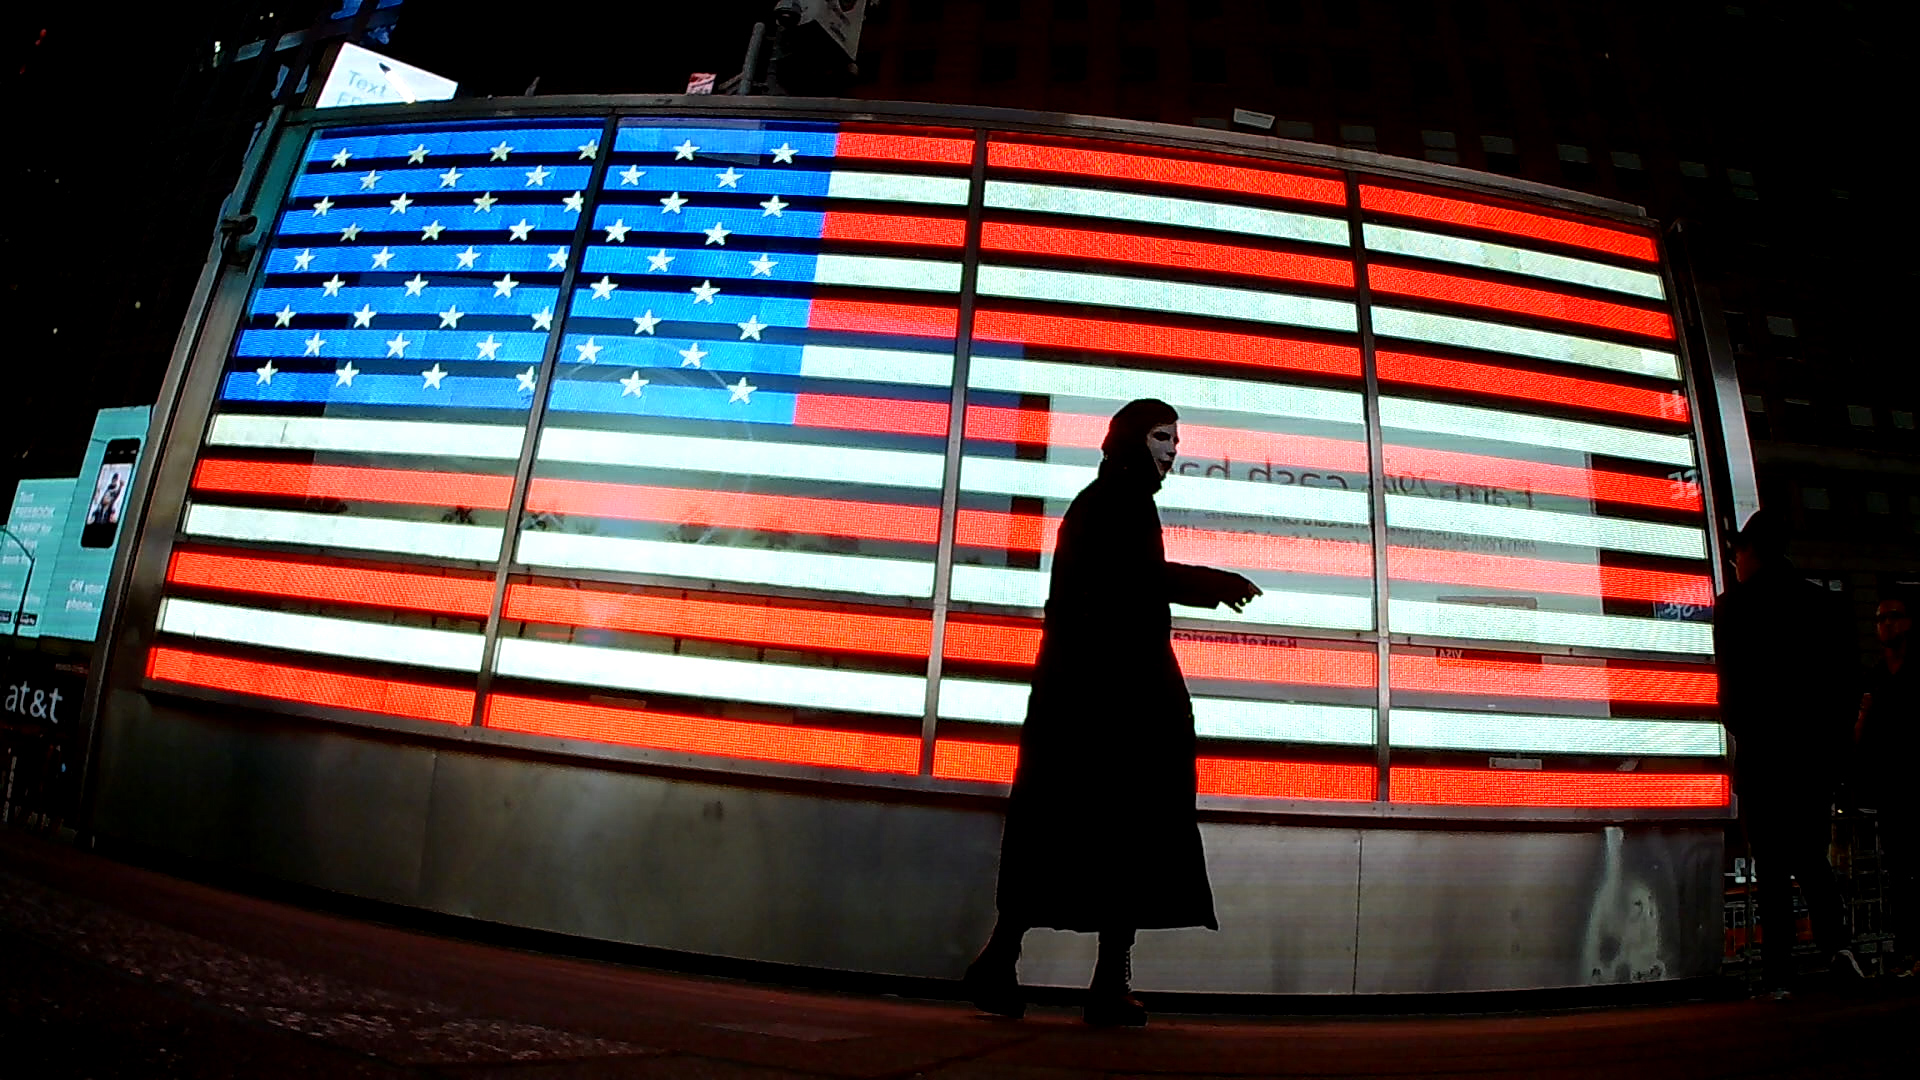 American Flag - Time Square - New York City NY 2016